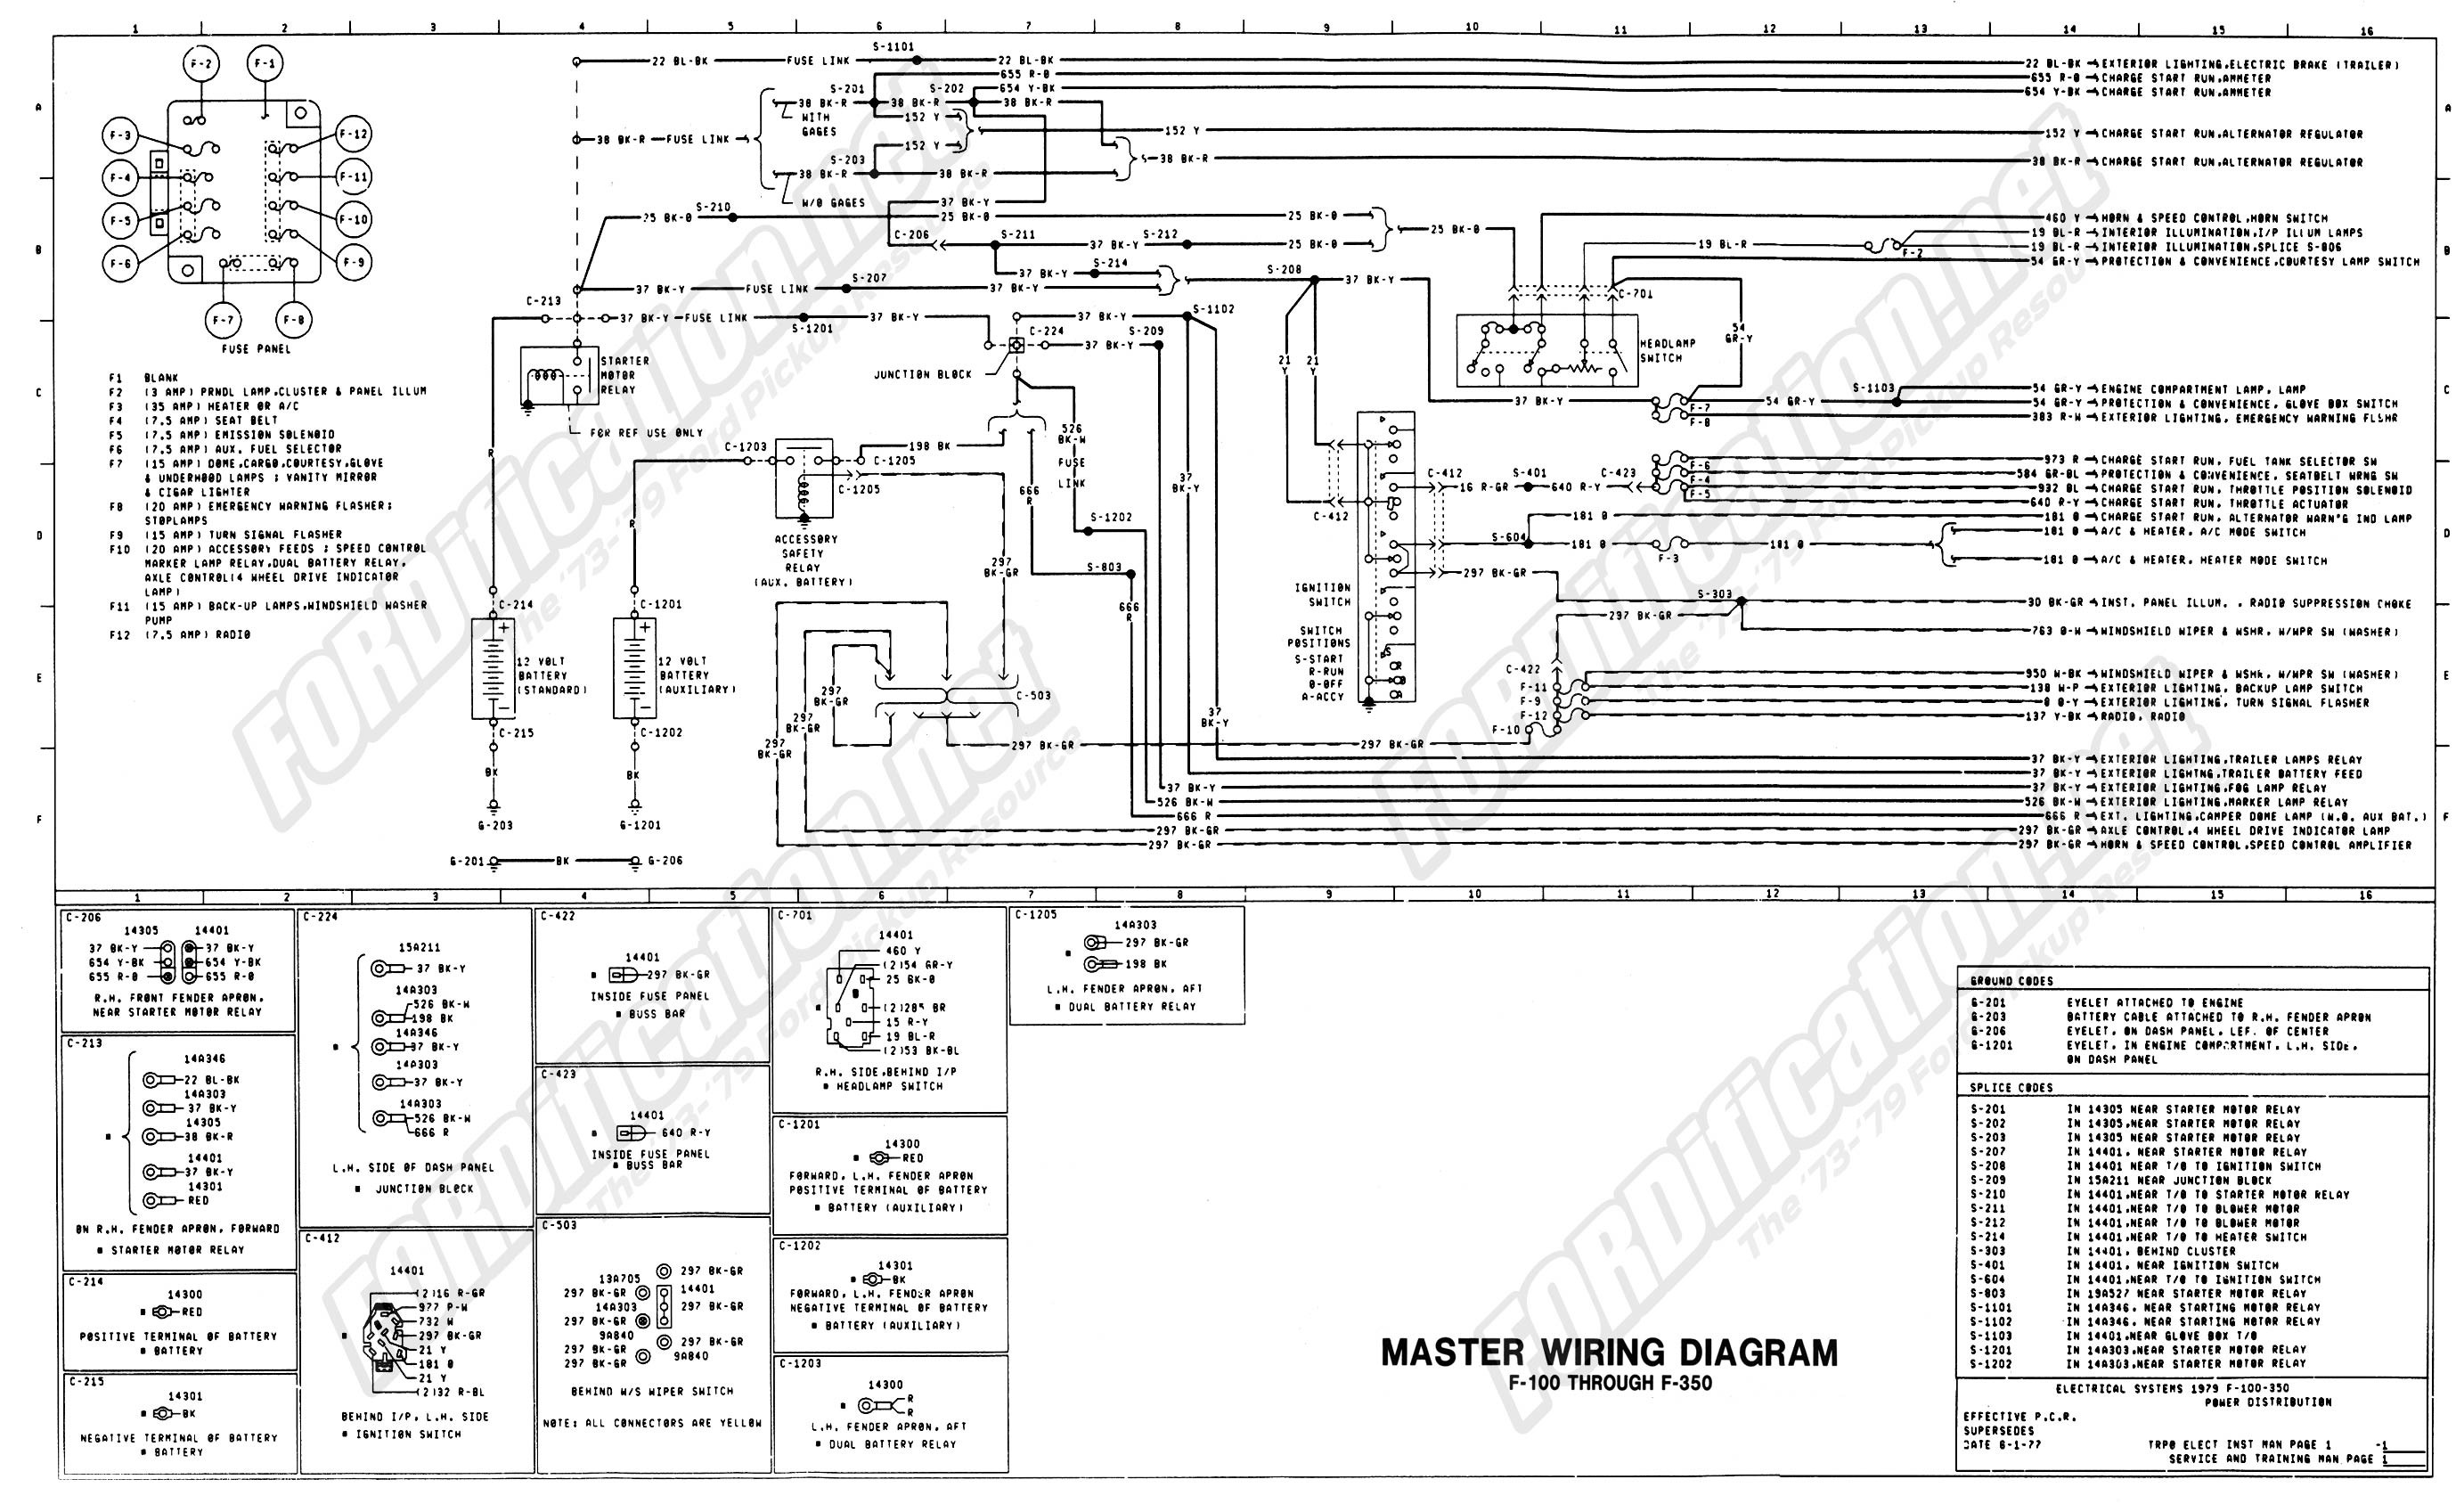 4f27e Solenoid Schematic Ford 4r44e Transmission Diagram Wiring Rhechangeconventioncollective: 2003 Ford Escape Engine Diagram At Gmaili.net